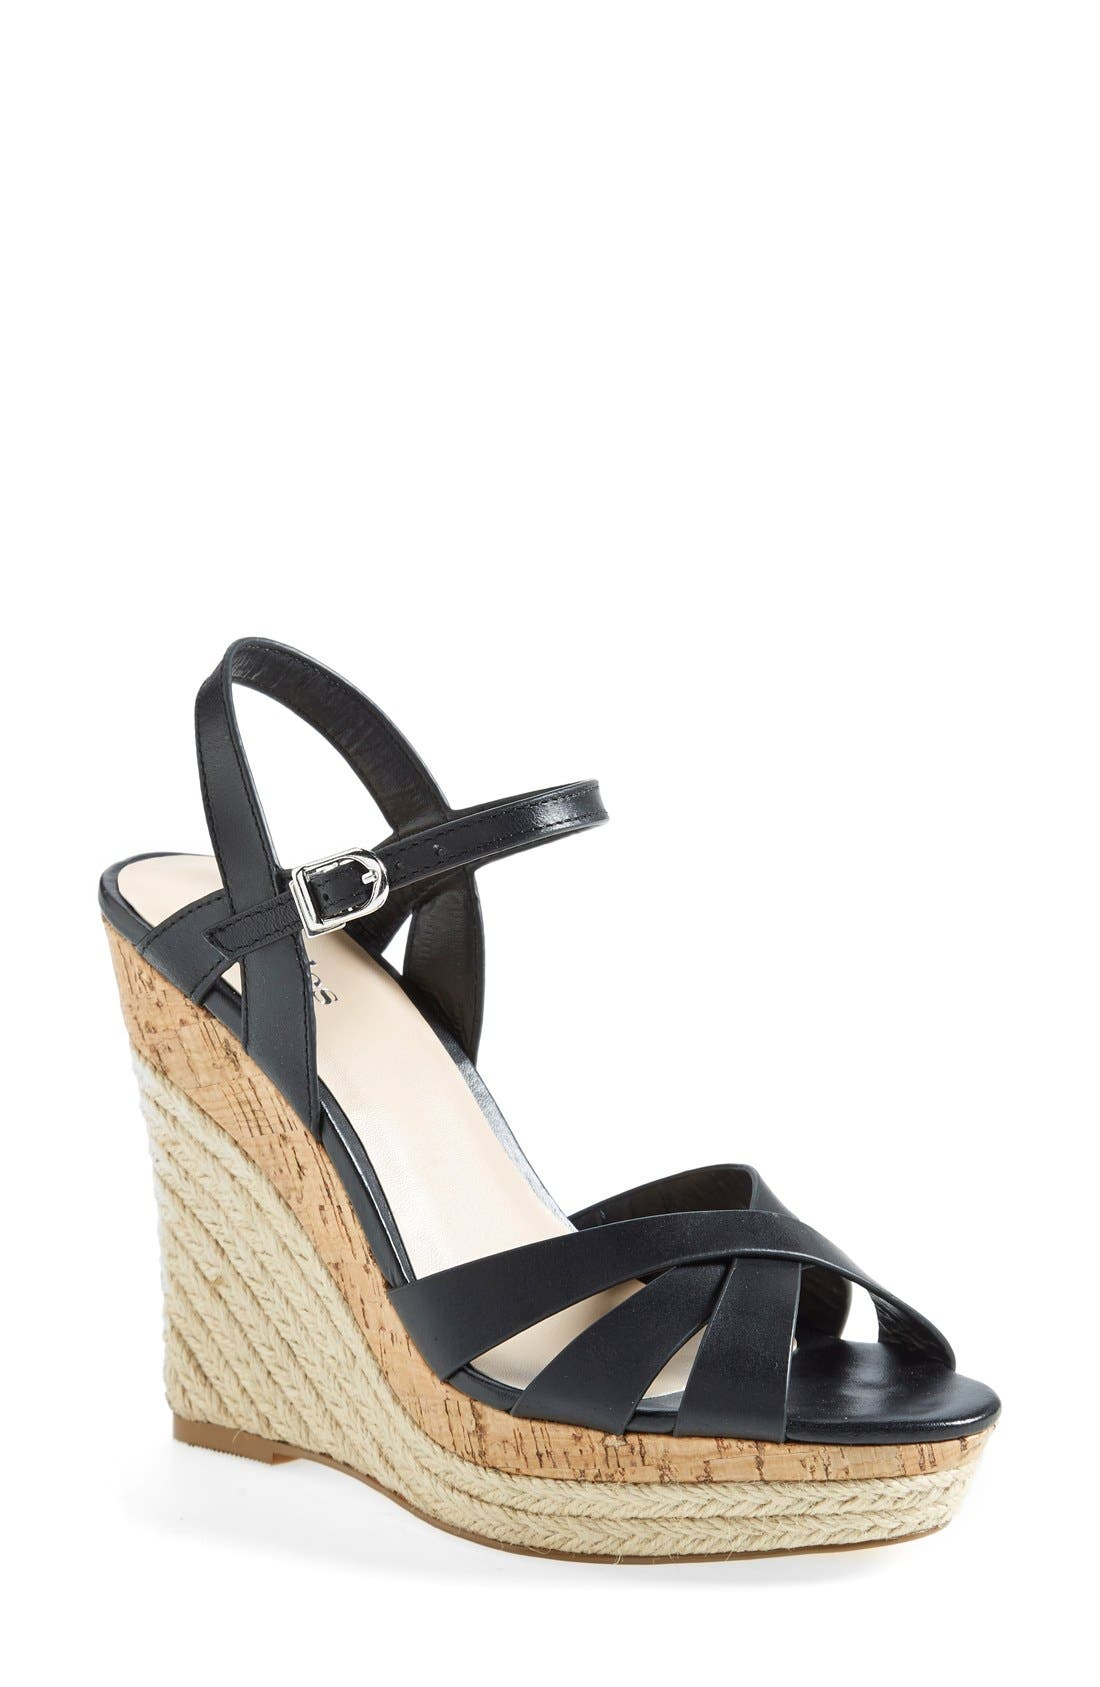 CHARLES BY CHARLES DAVID,                             'Astro' Espadrille Sandal,                             Main thumbnail 1, color,                             001